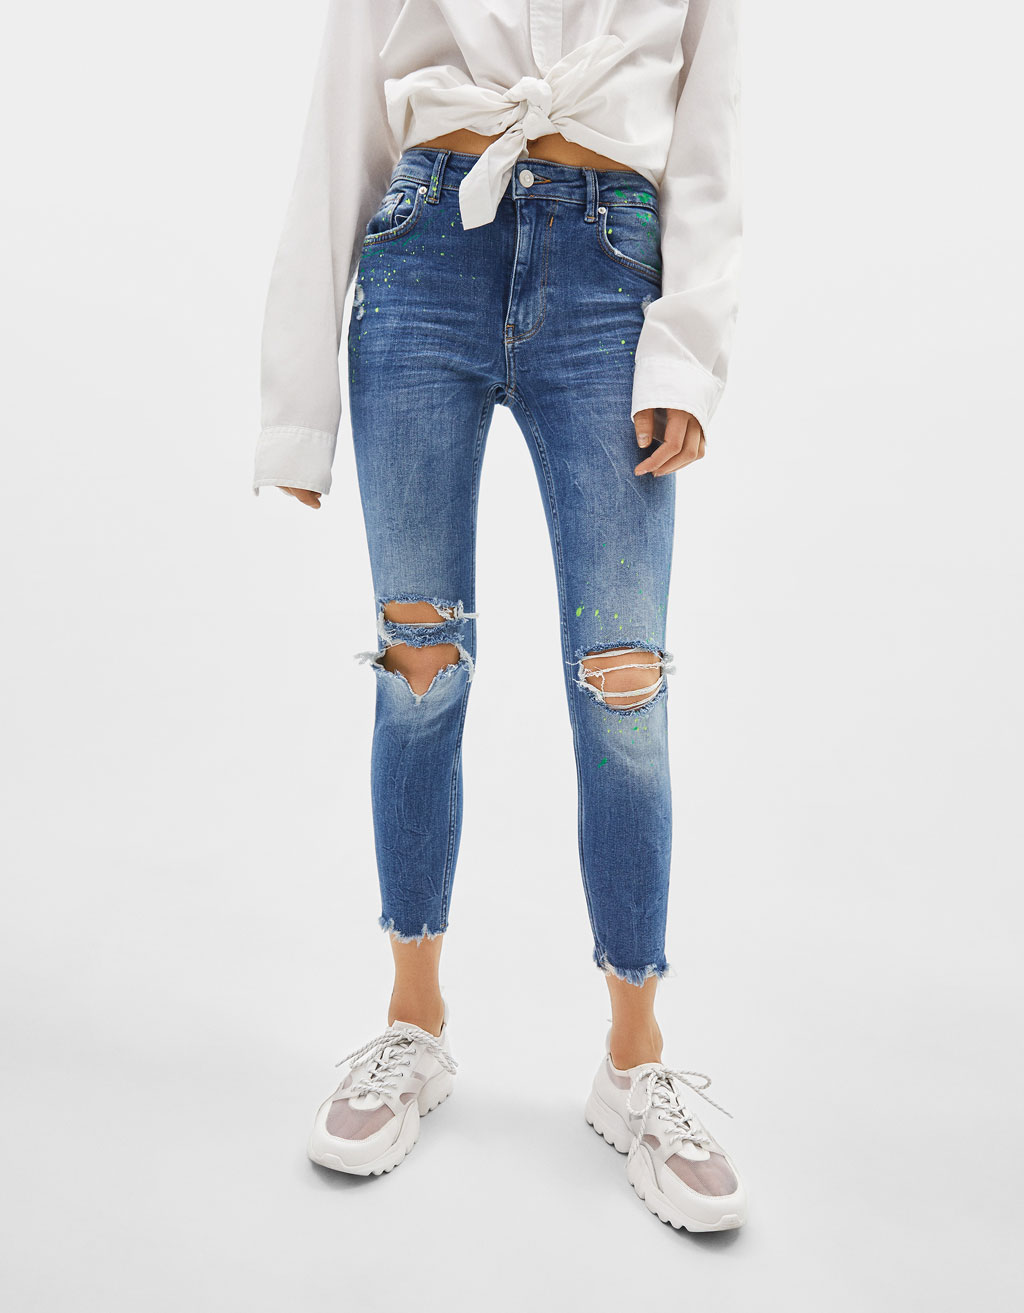 mid rise skinny jeans bootcut jeans jeans #11